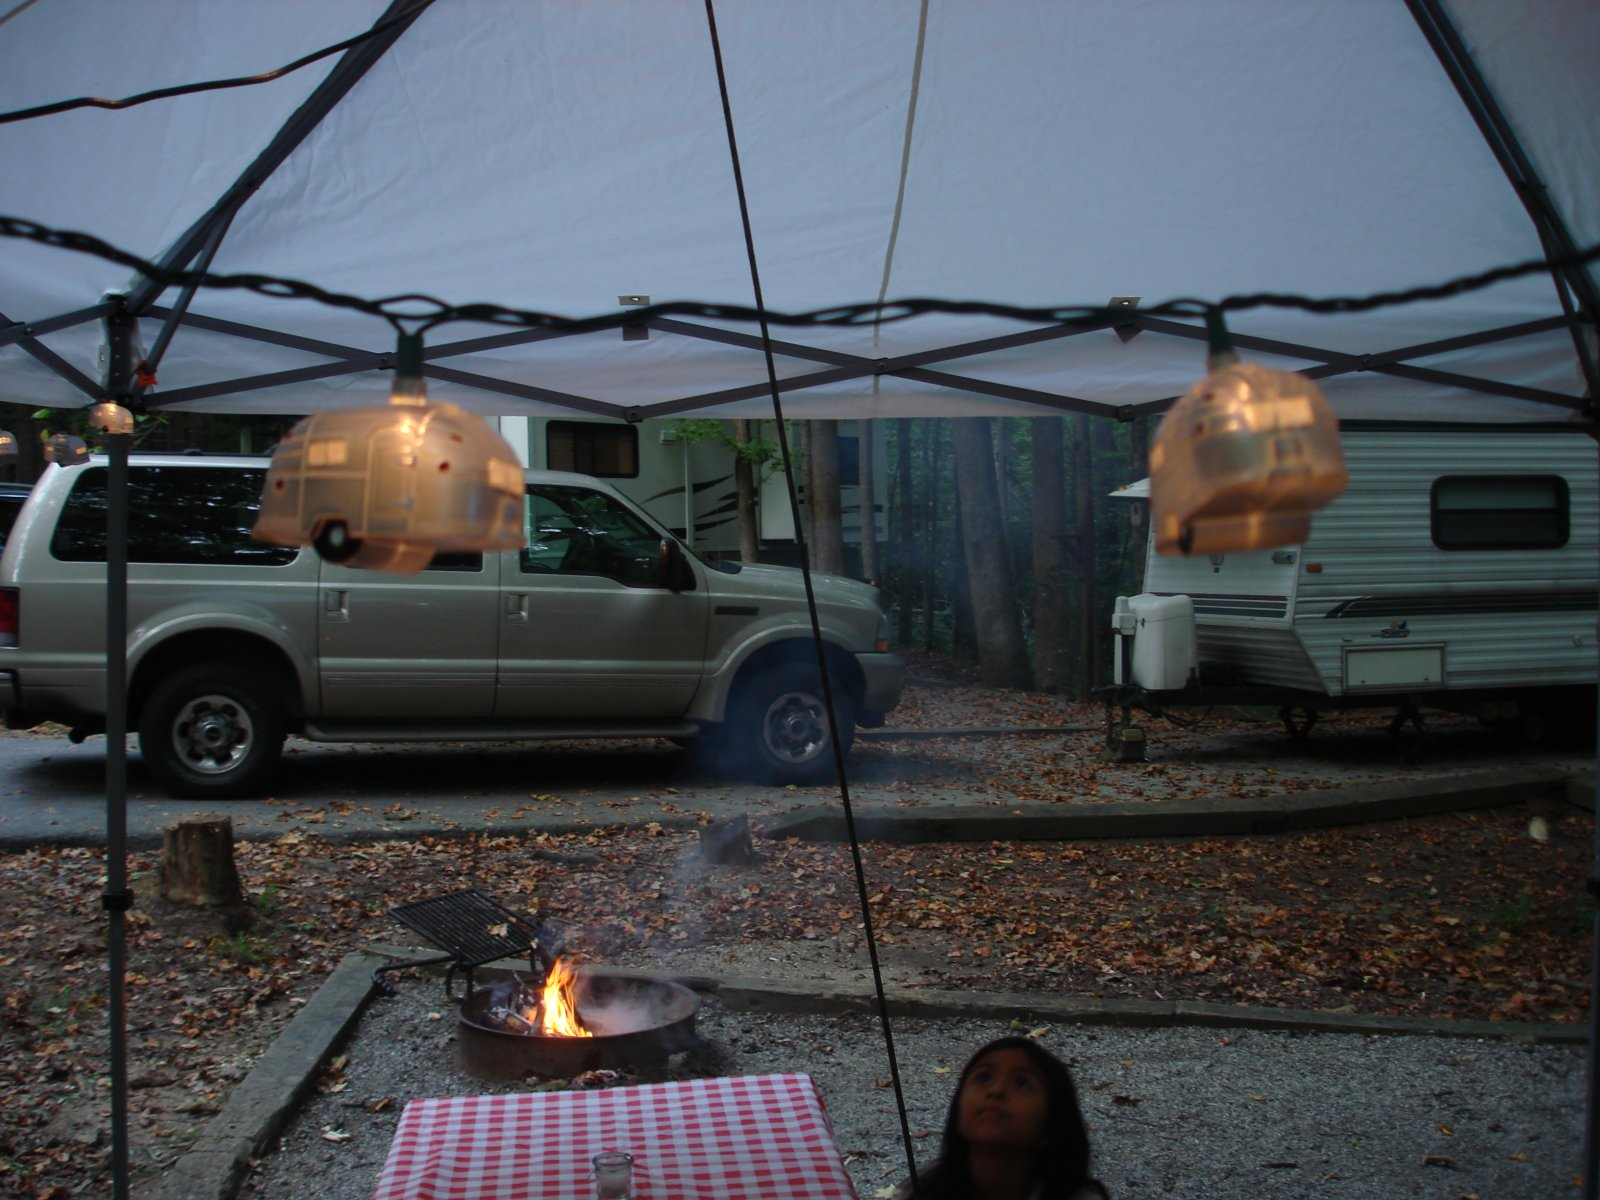 Click image for larger version  Name:campfire 005.jpg Views:70 Size:290.4 KB ID:141092